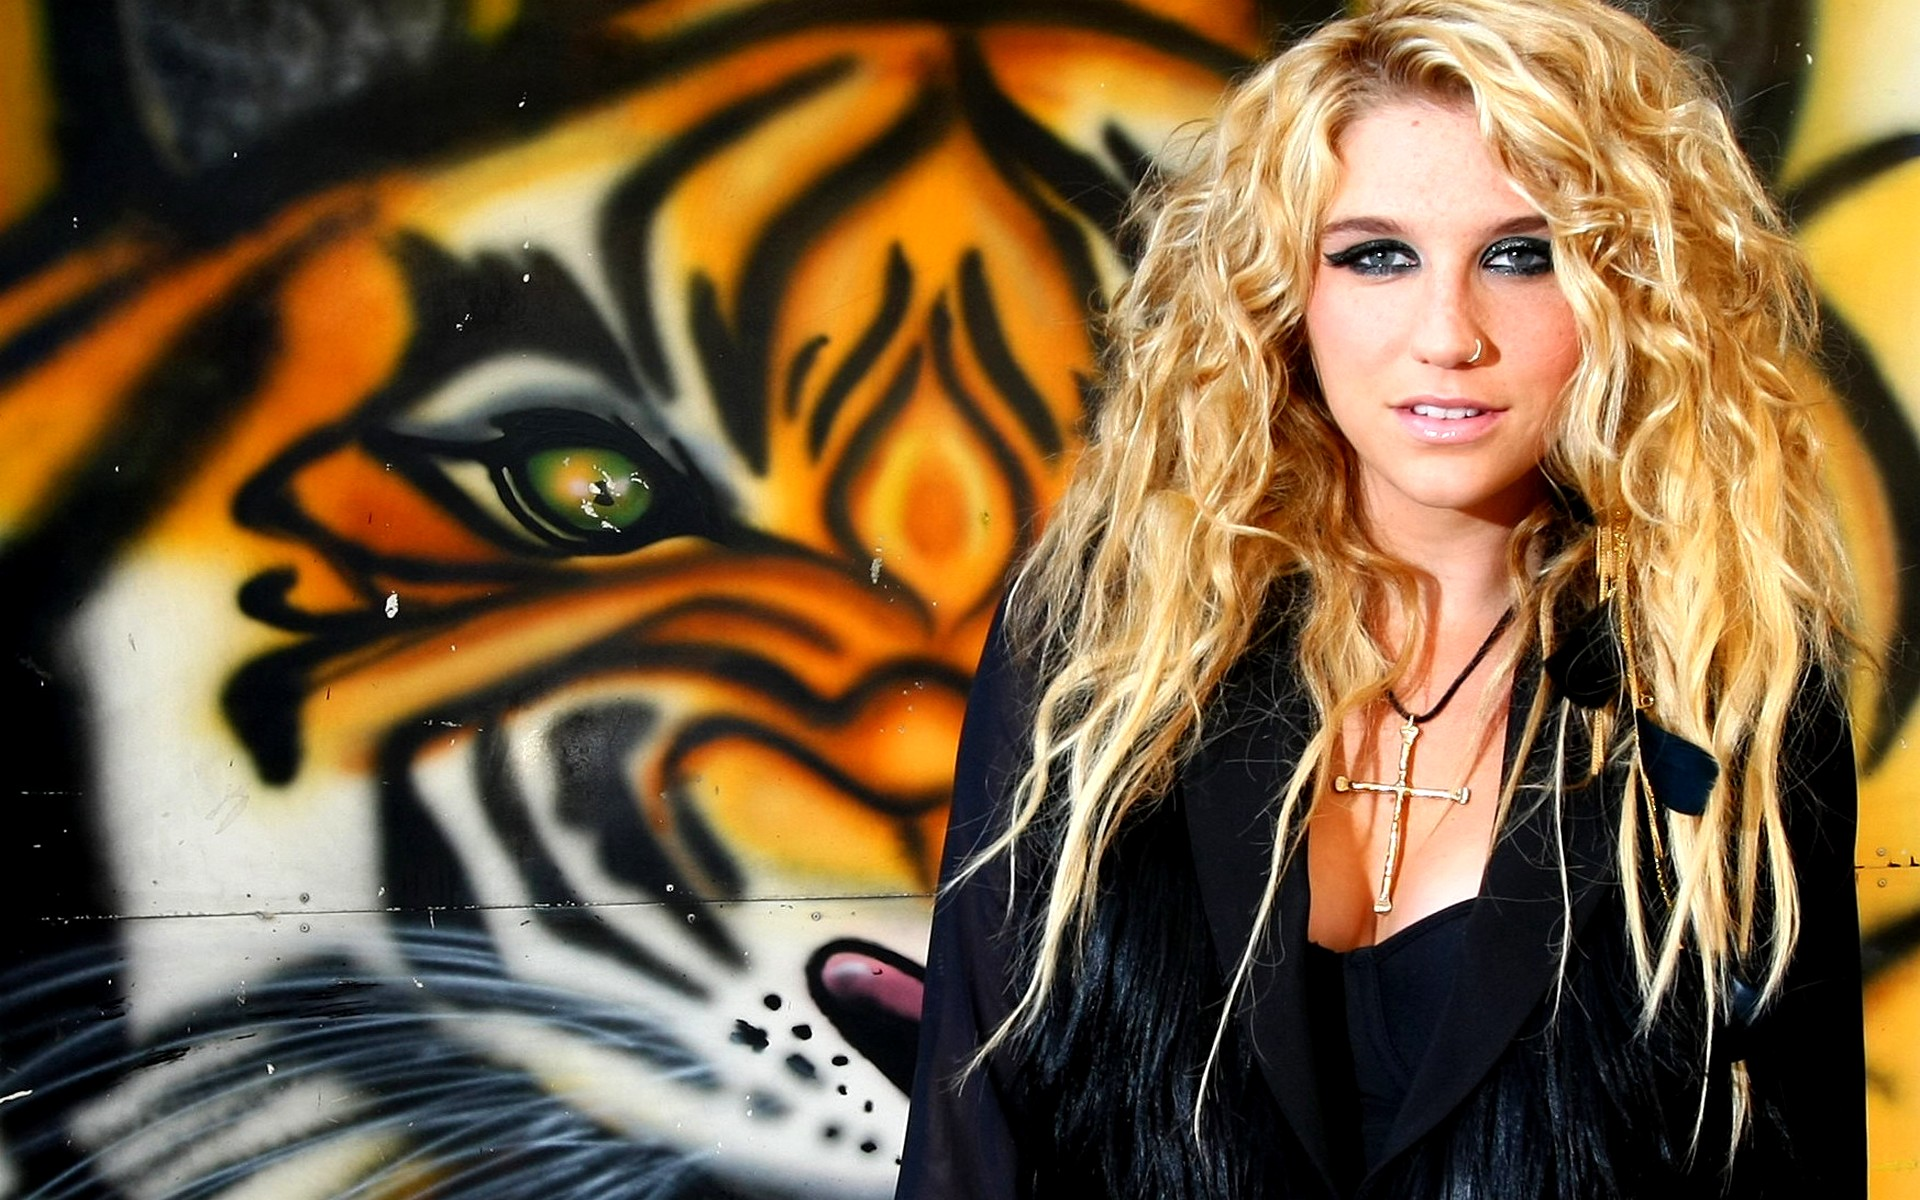 Kesha 2013 Hd Wallpaper High Quality Wallpapers 1920x1200